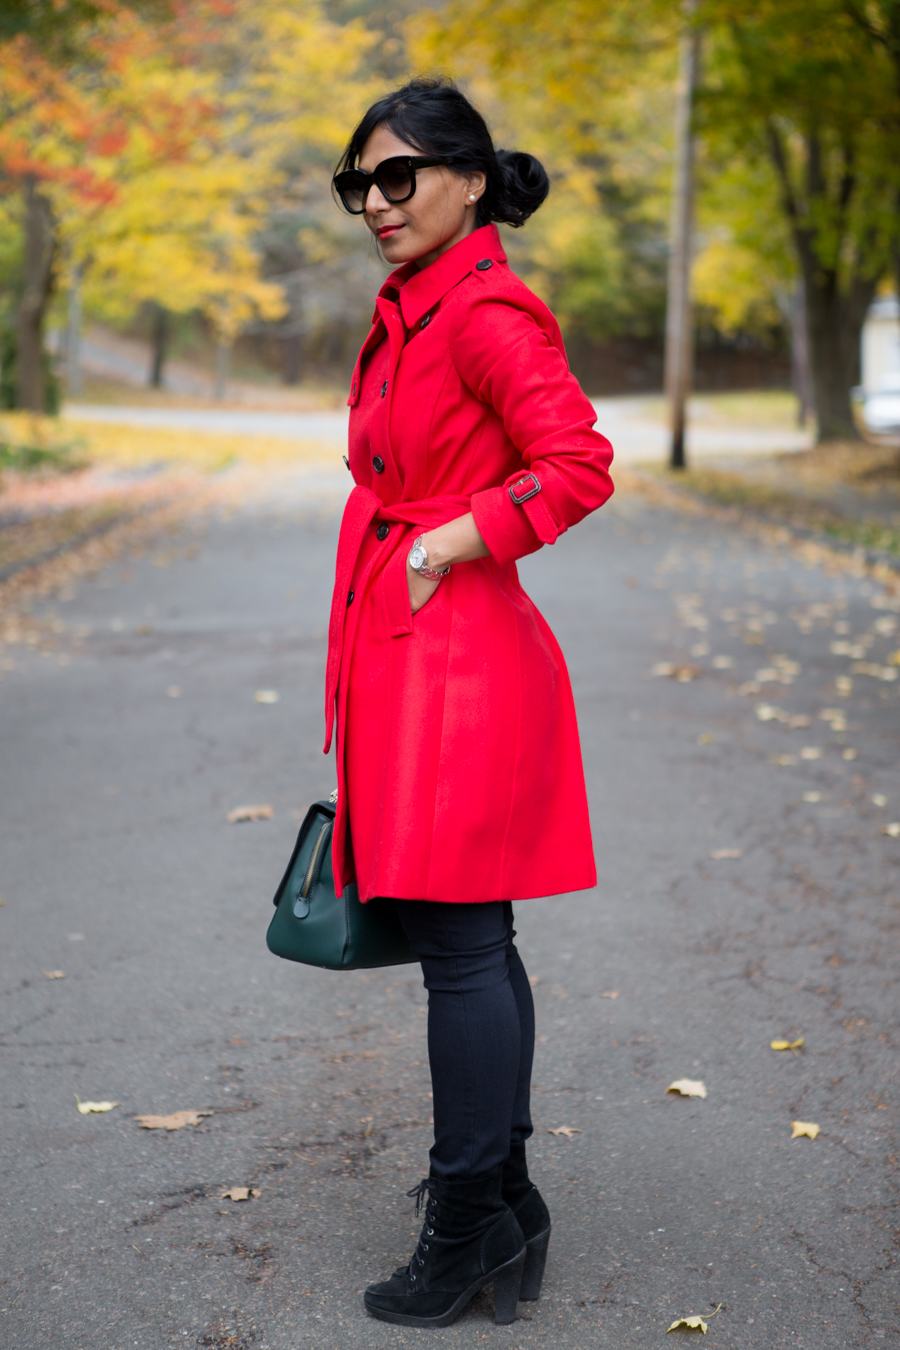 winter coat, j.crew, winter style, winter fashion, fall fashion, petite coat, petite style, red coat, cashmere, womens trench, trench coat, warm coat, dreyfussnandco, paige jeans, petite blogger, preppy style, dressy coat, colorful